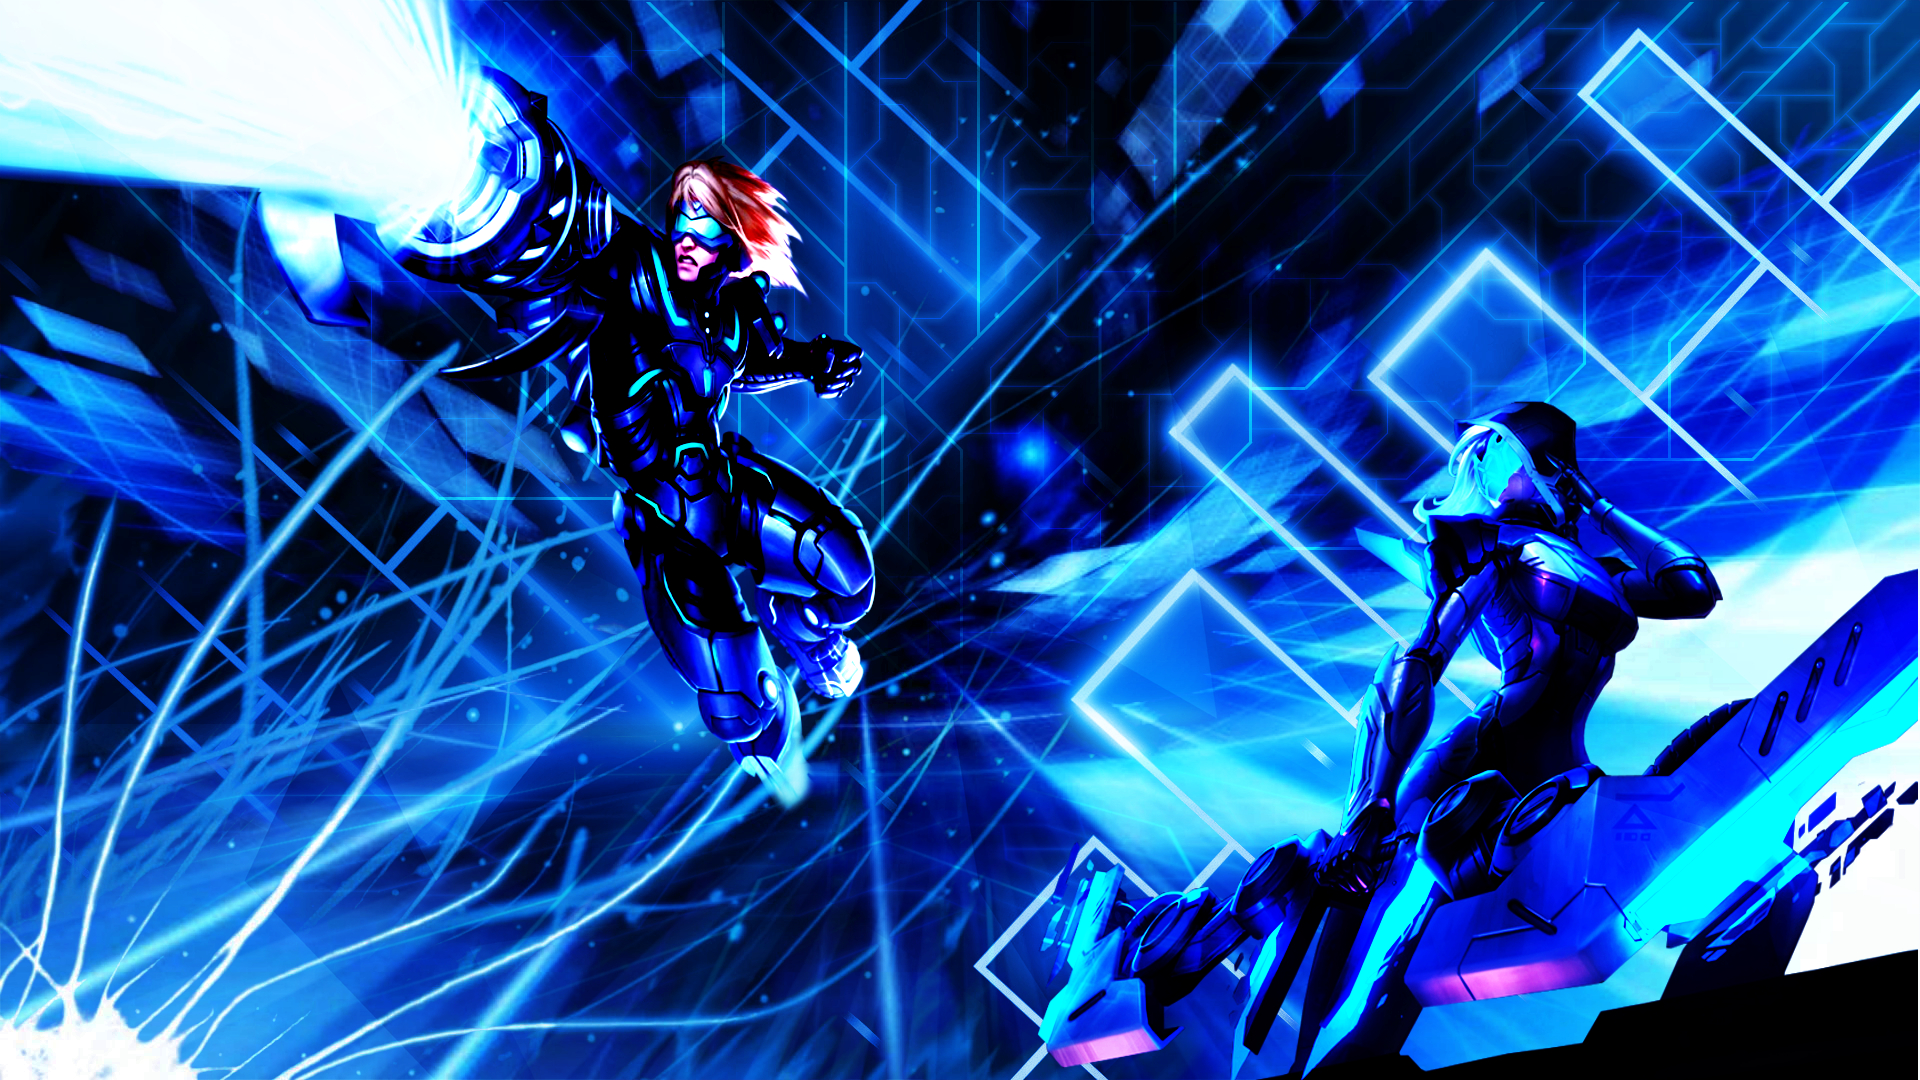 Lol Project Ashe And Pulsefire Ezreal Wallpaper By Nestroix